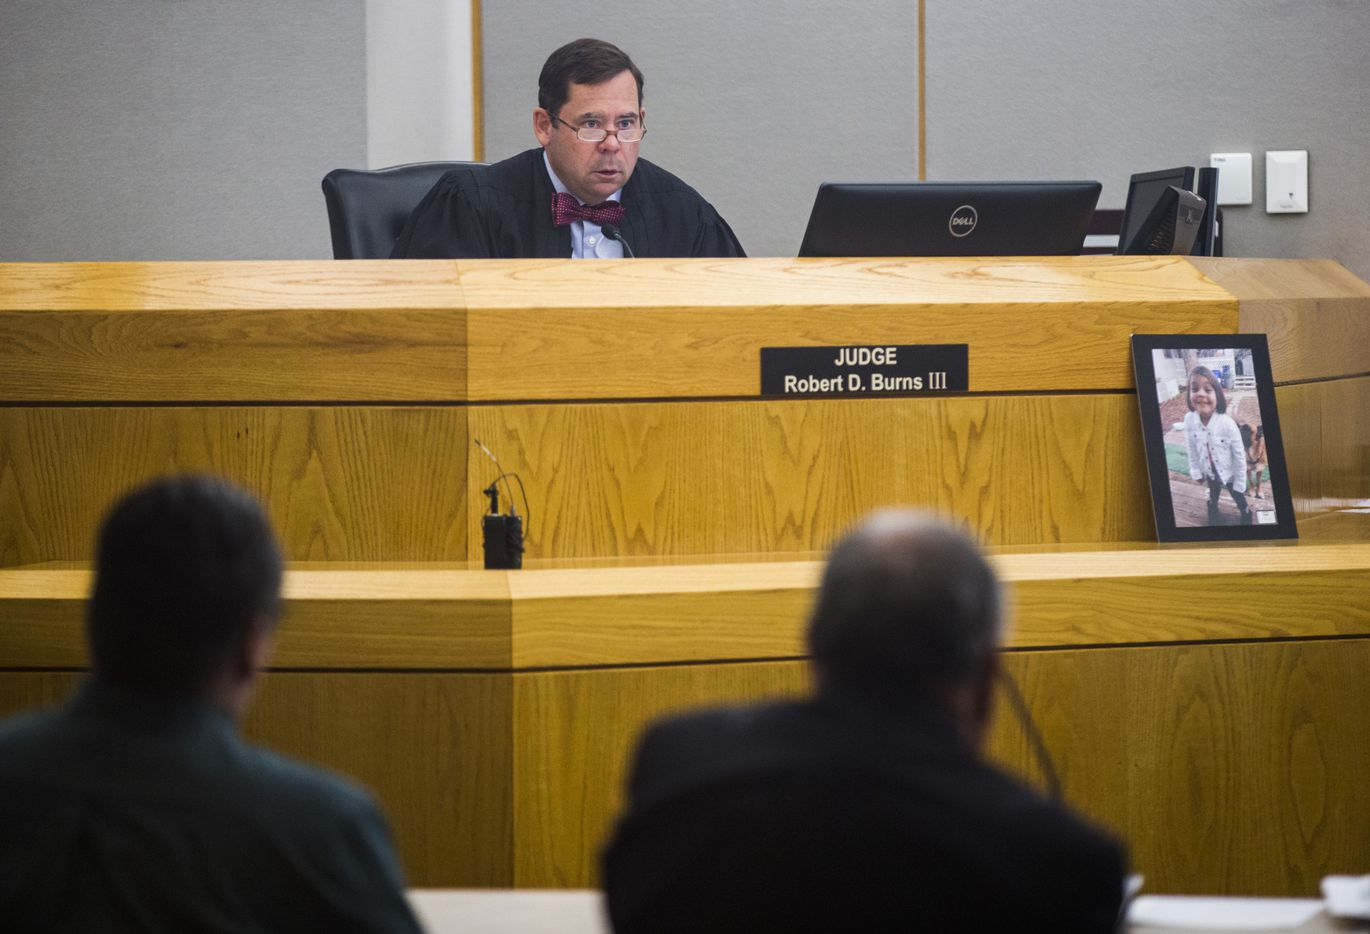 A photo of Leiliana Wright rests near Judge Robert D. Burns III during the final day of a trial for Charles Phifer (left) who was found guilty of capital murder in the March 2016 beating death the 4-year-old.